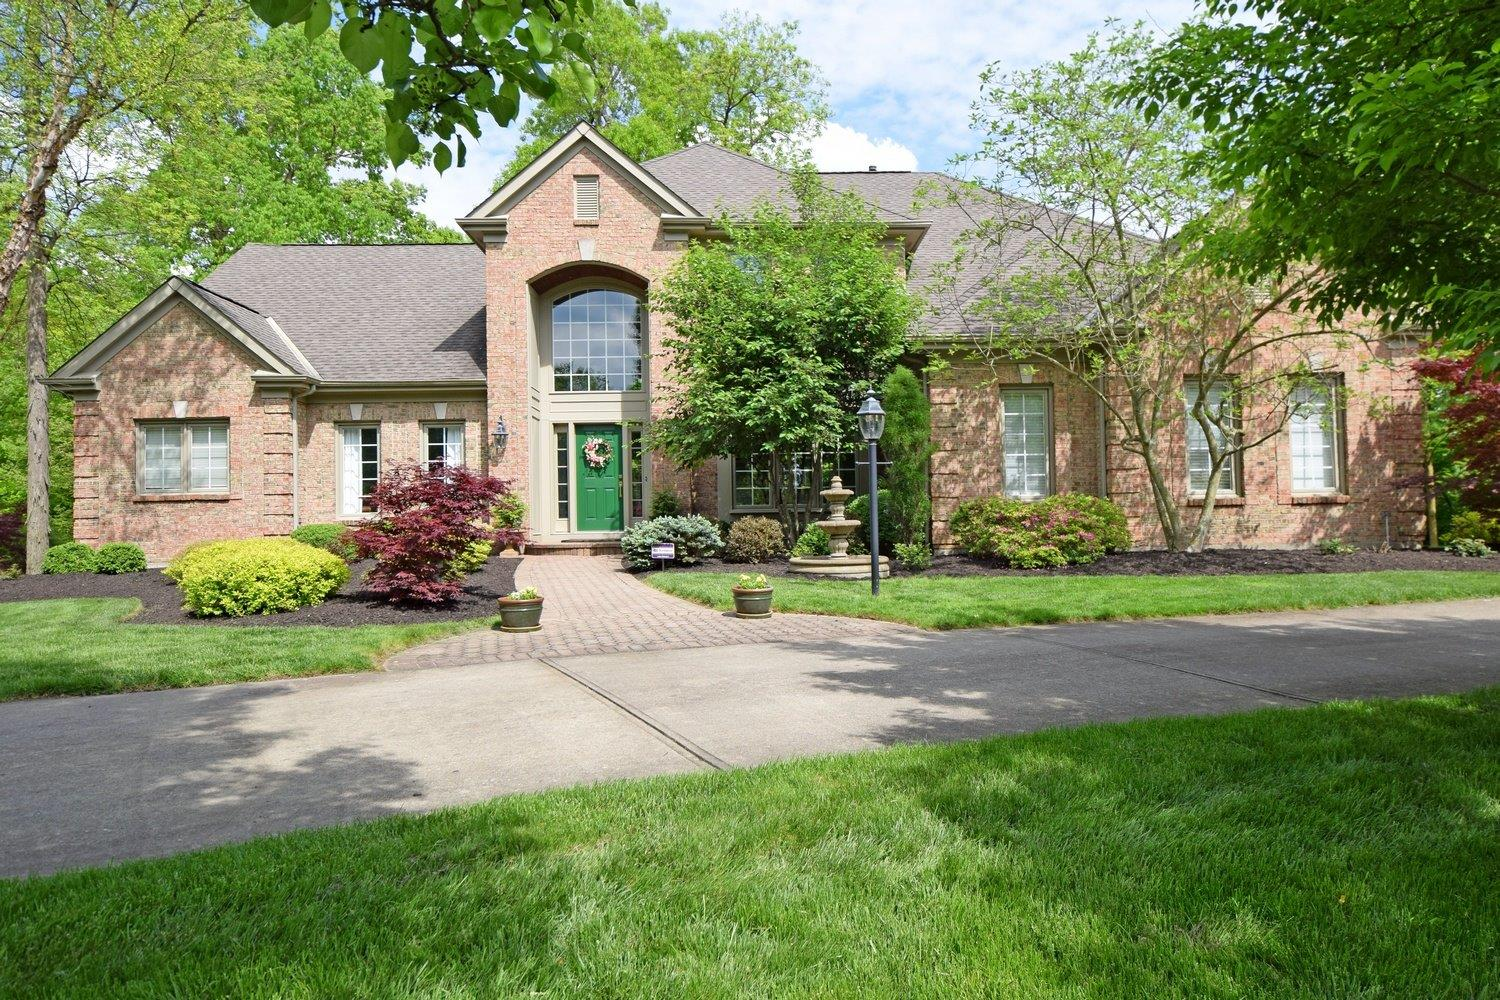 Property for sale at 10258 Stablehand Drive, Symmes Twp,  Ohio 45242